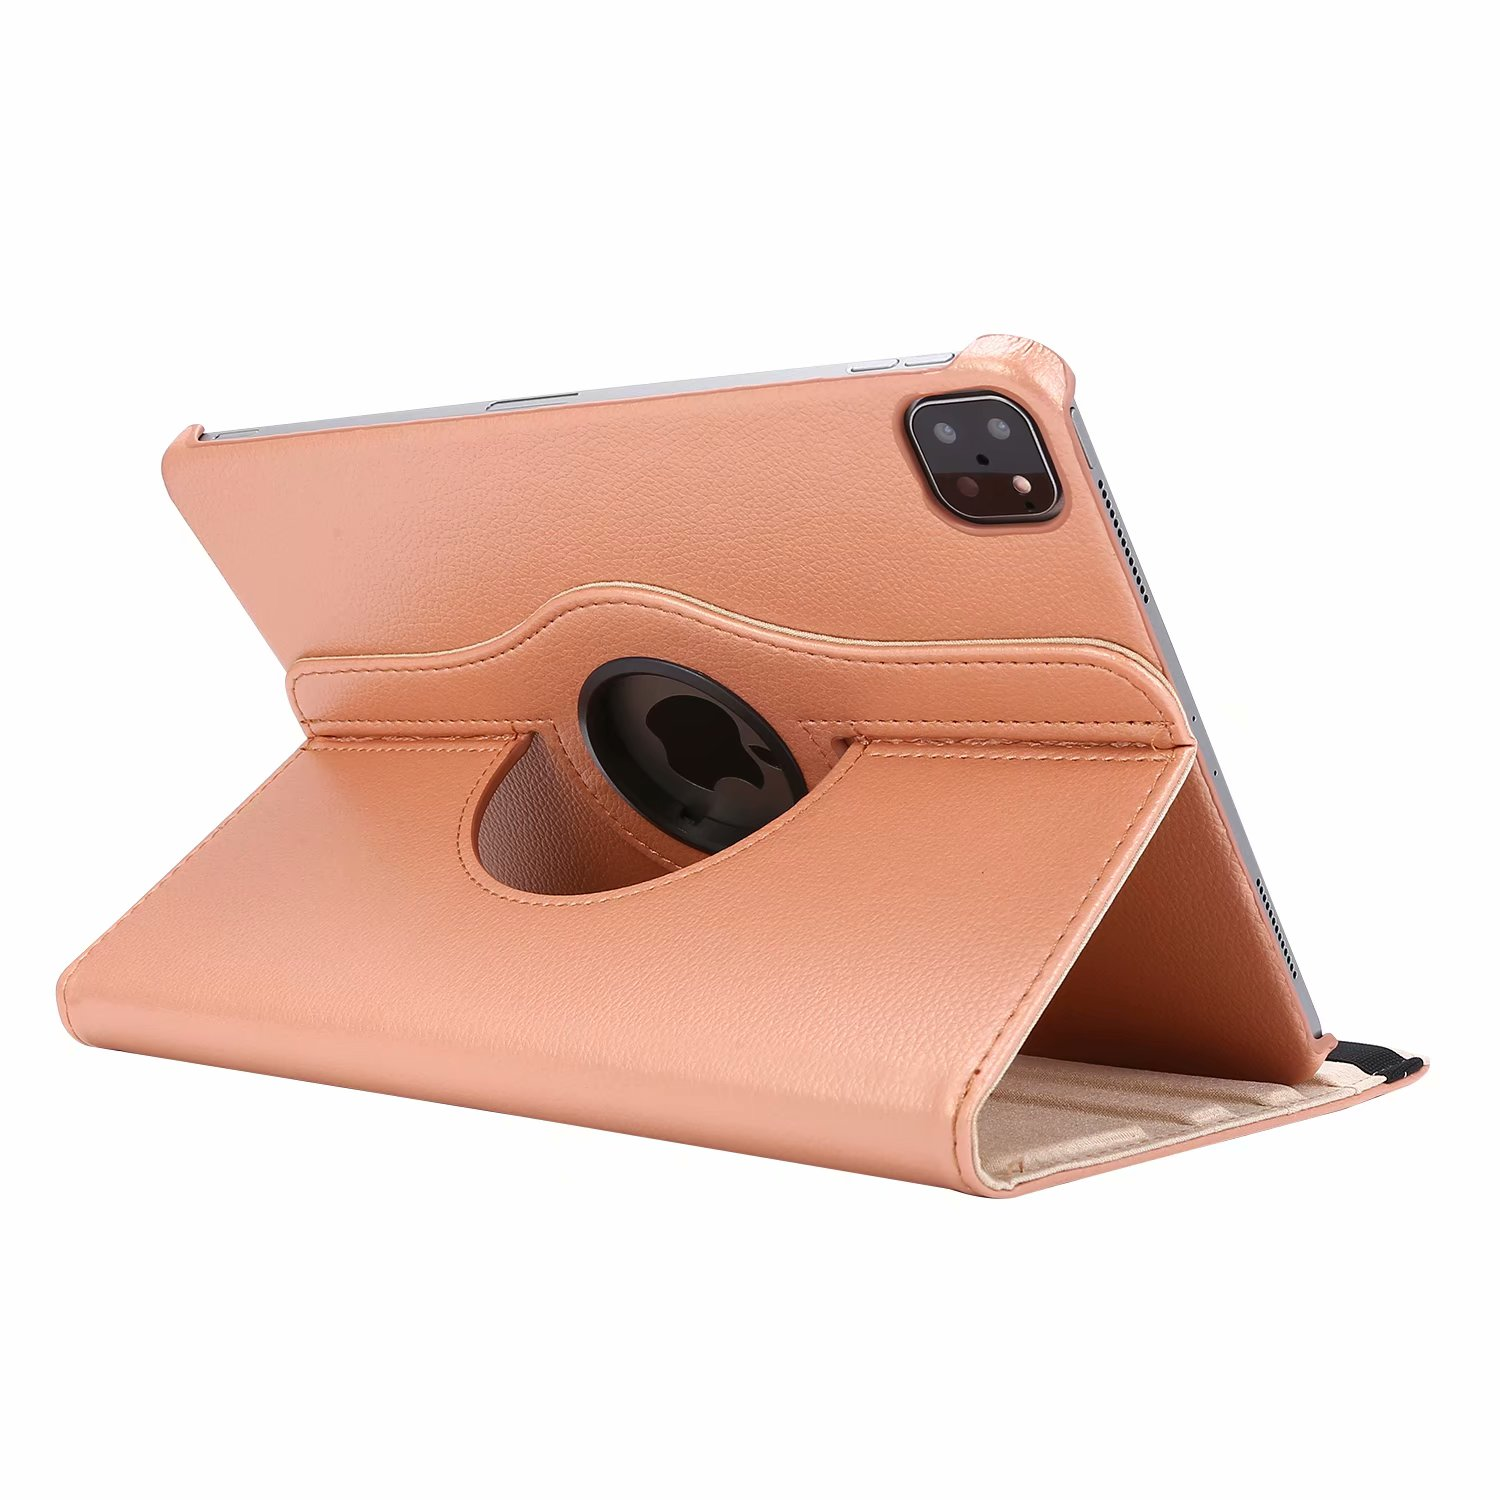 Champagne Champagne Case for iPad Pro 11 Cover 2021 2020 2018 A2228 A2068 A2230 A2013 A1934 A1980 360